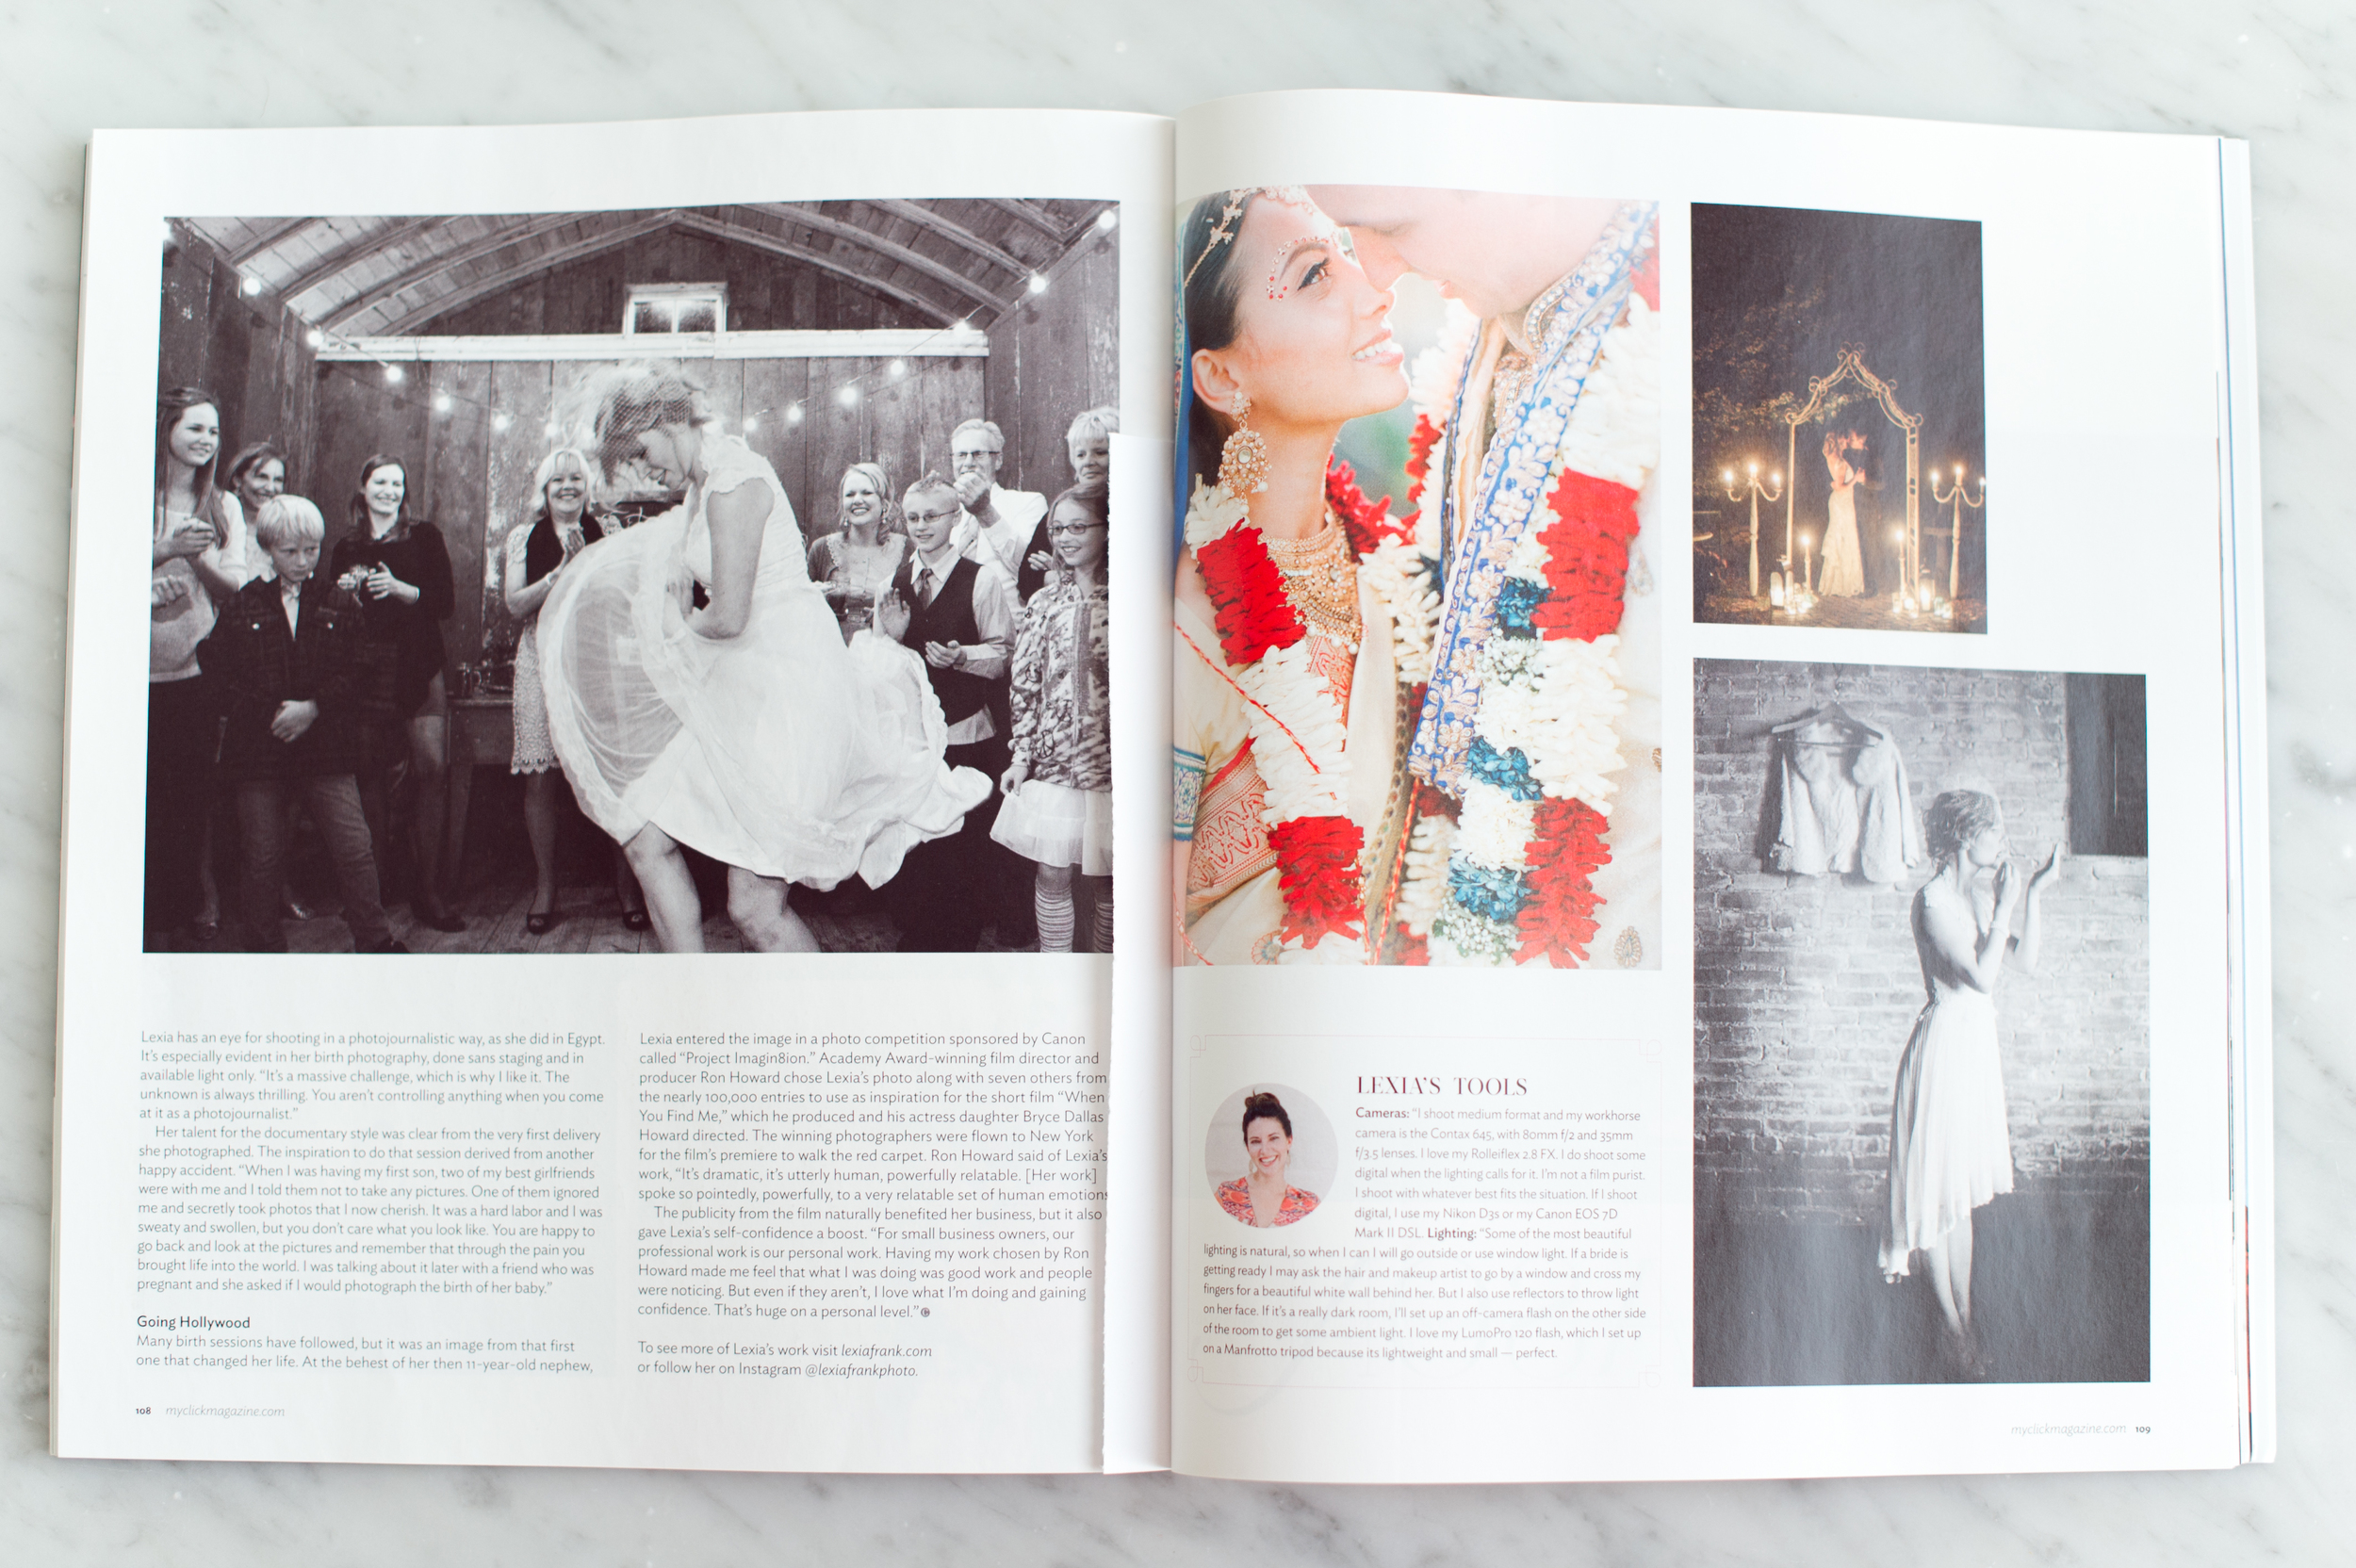 Destination Wedding Photographer, Lexia Frank, is a portland oregon wedding photographer specializing in Fine Art Wedding Photography around the world. she is published in Click Magazine for her work shooting luxury weddings on film around the world.